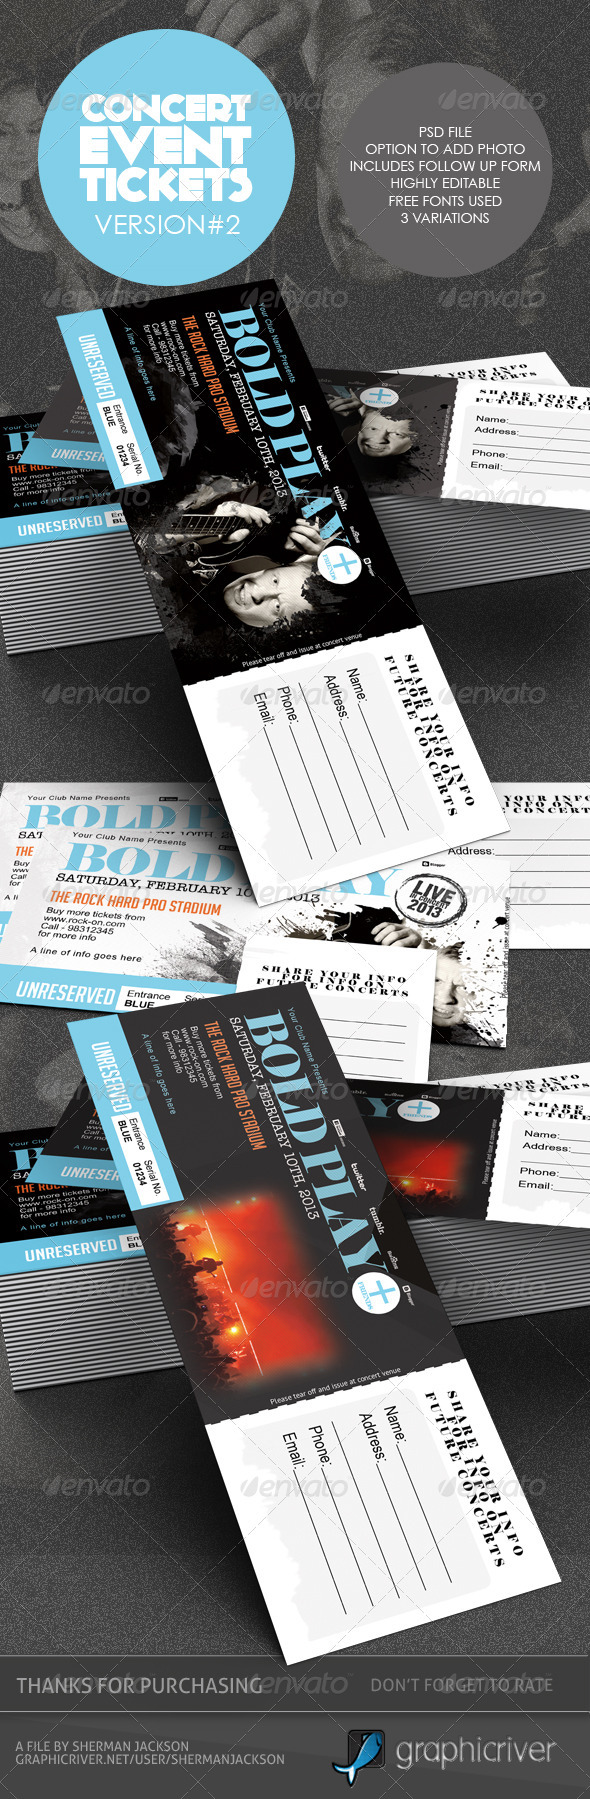 GraphicRiver Concert & Event Tickets Passes Version 2 3737582